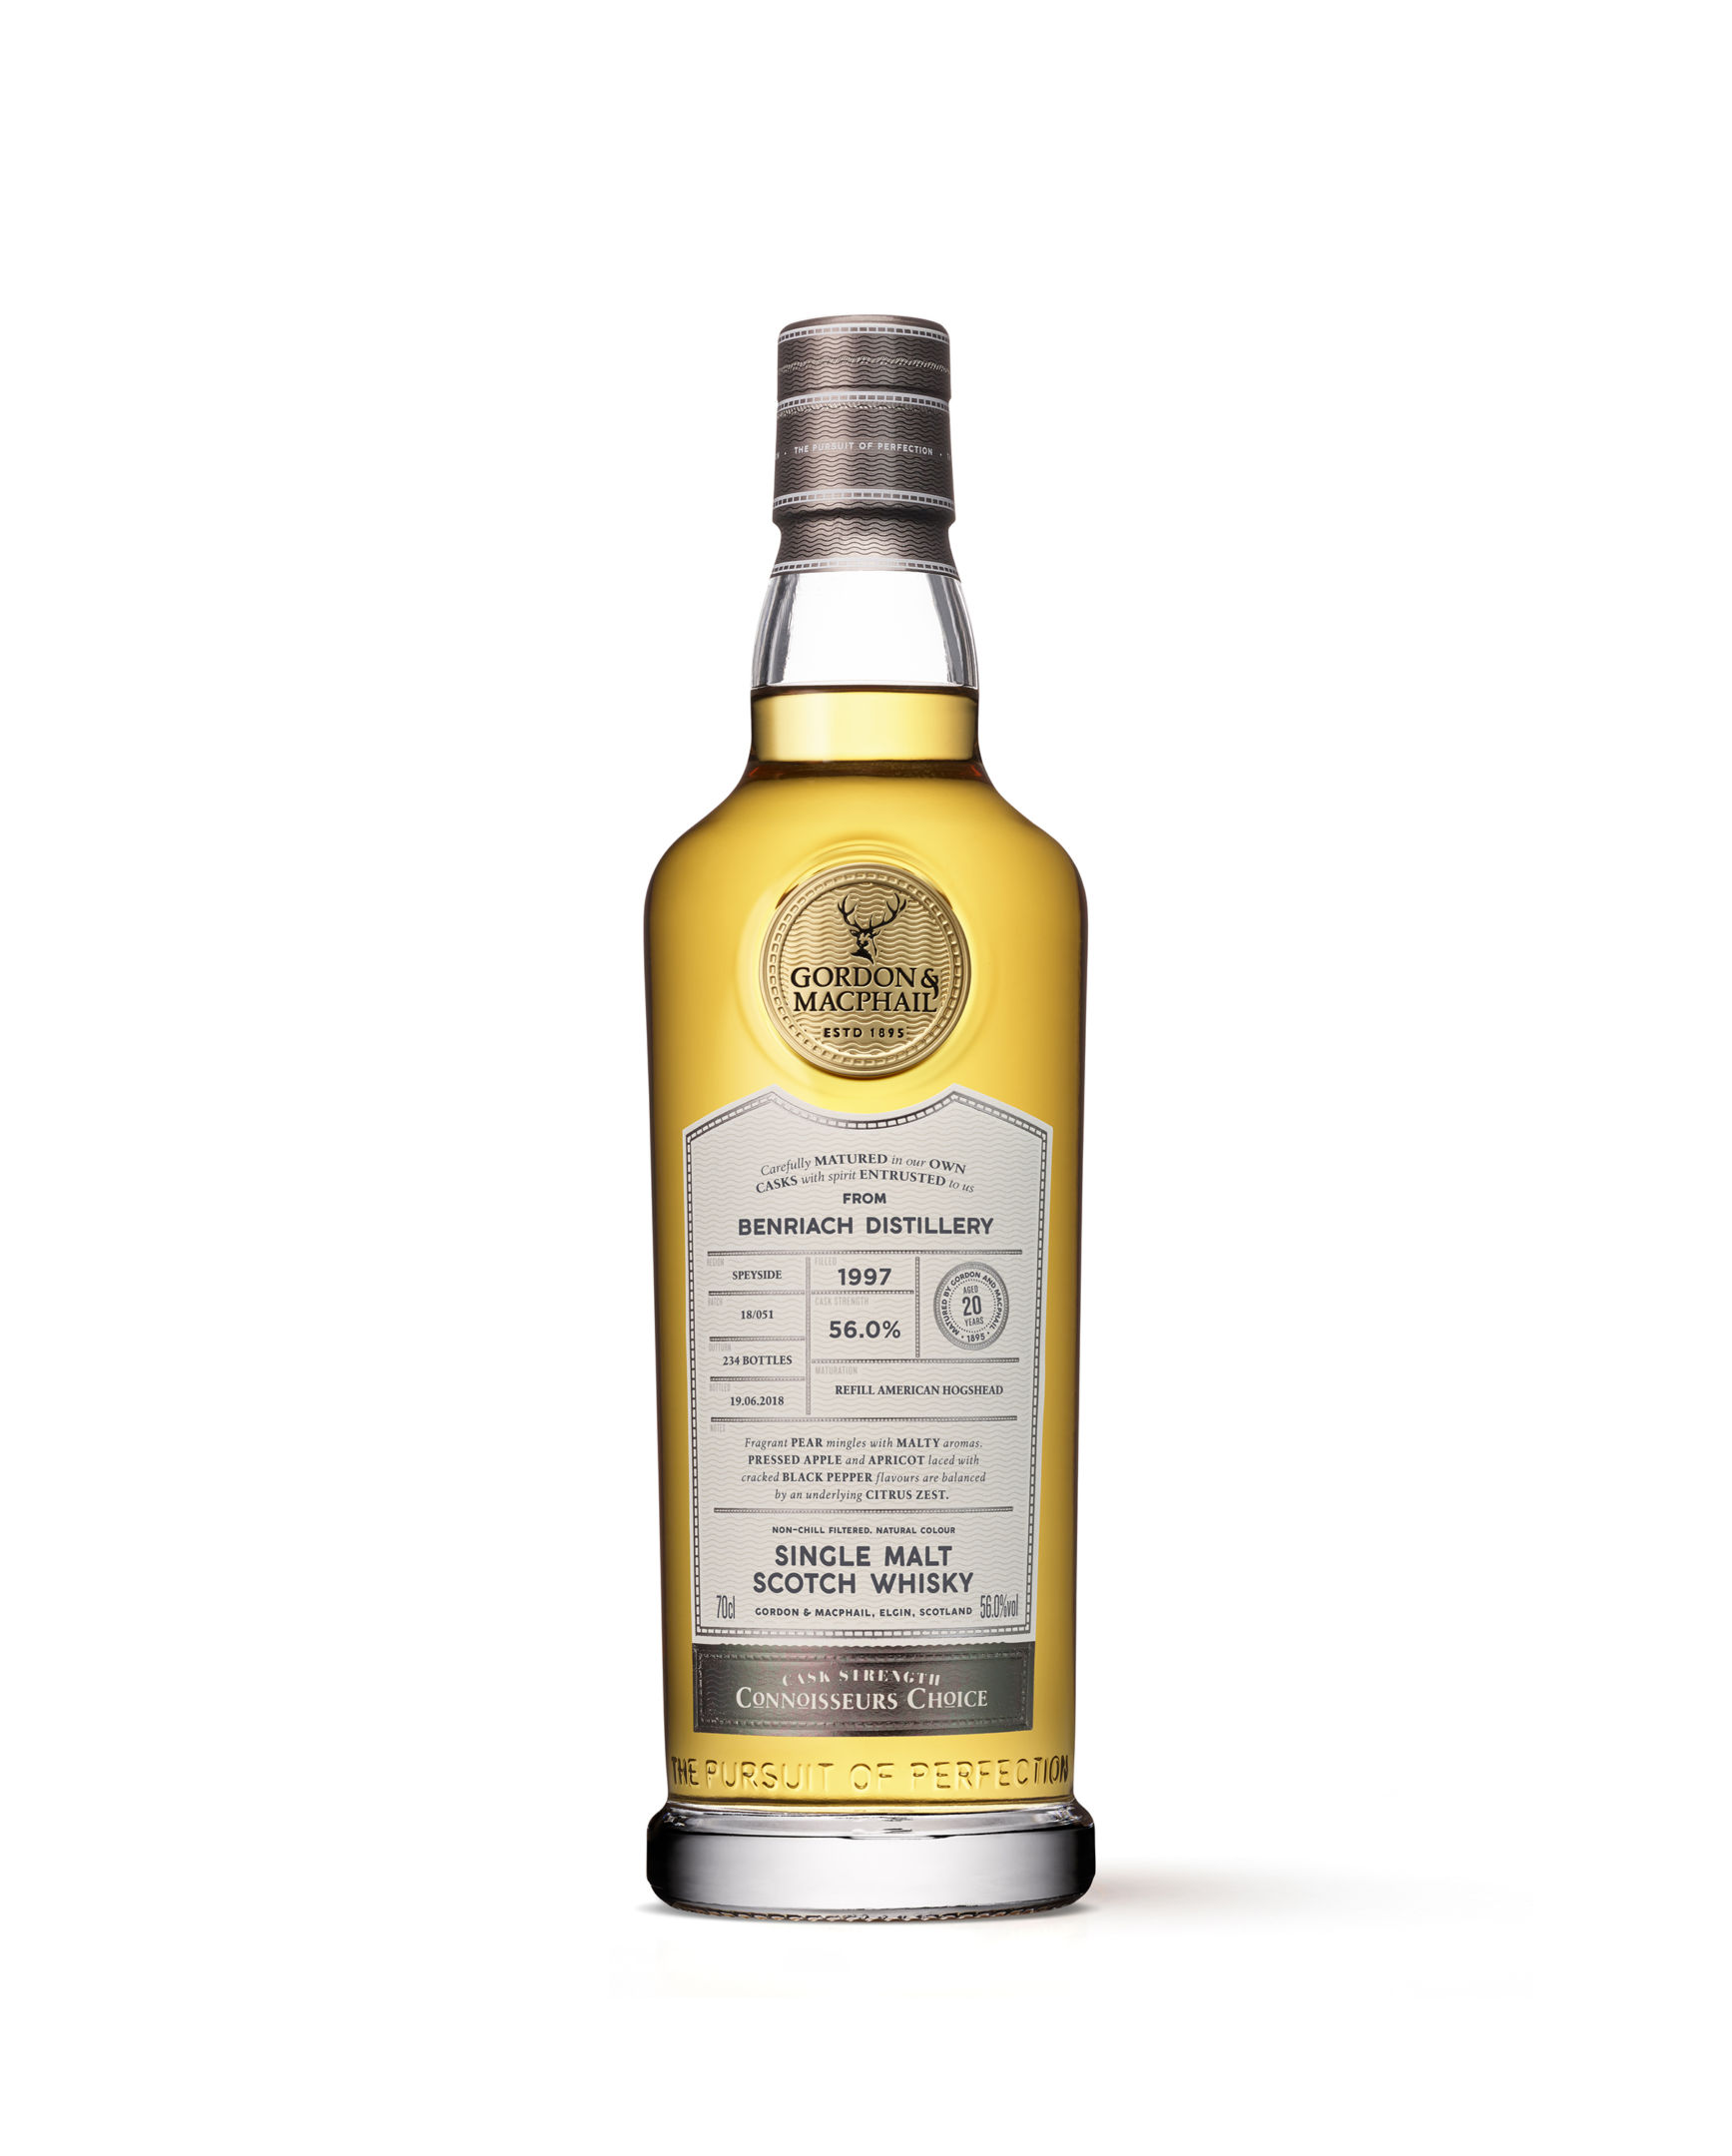 Benriach 1997 20 Year Old